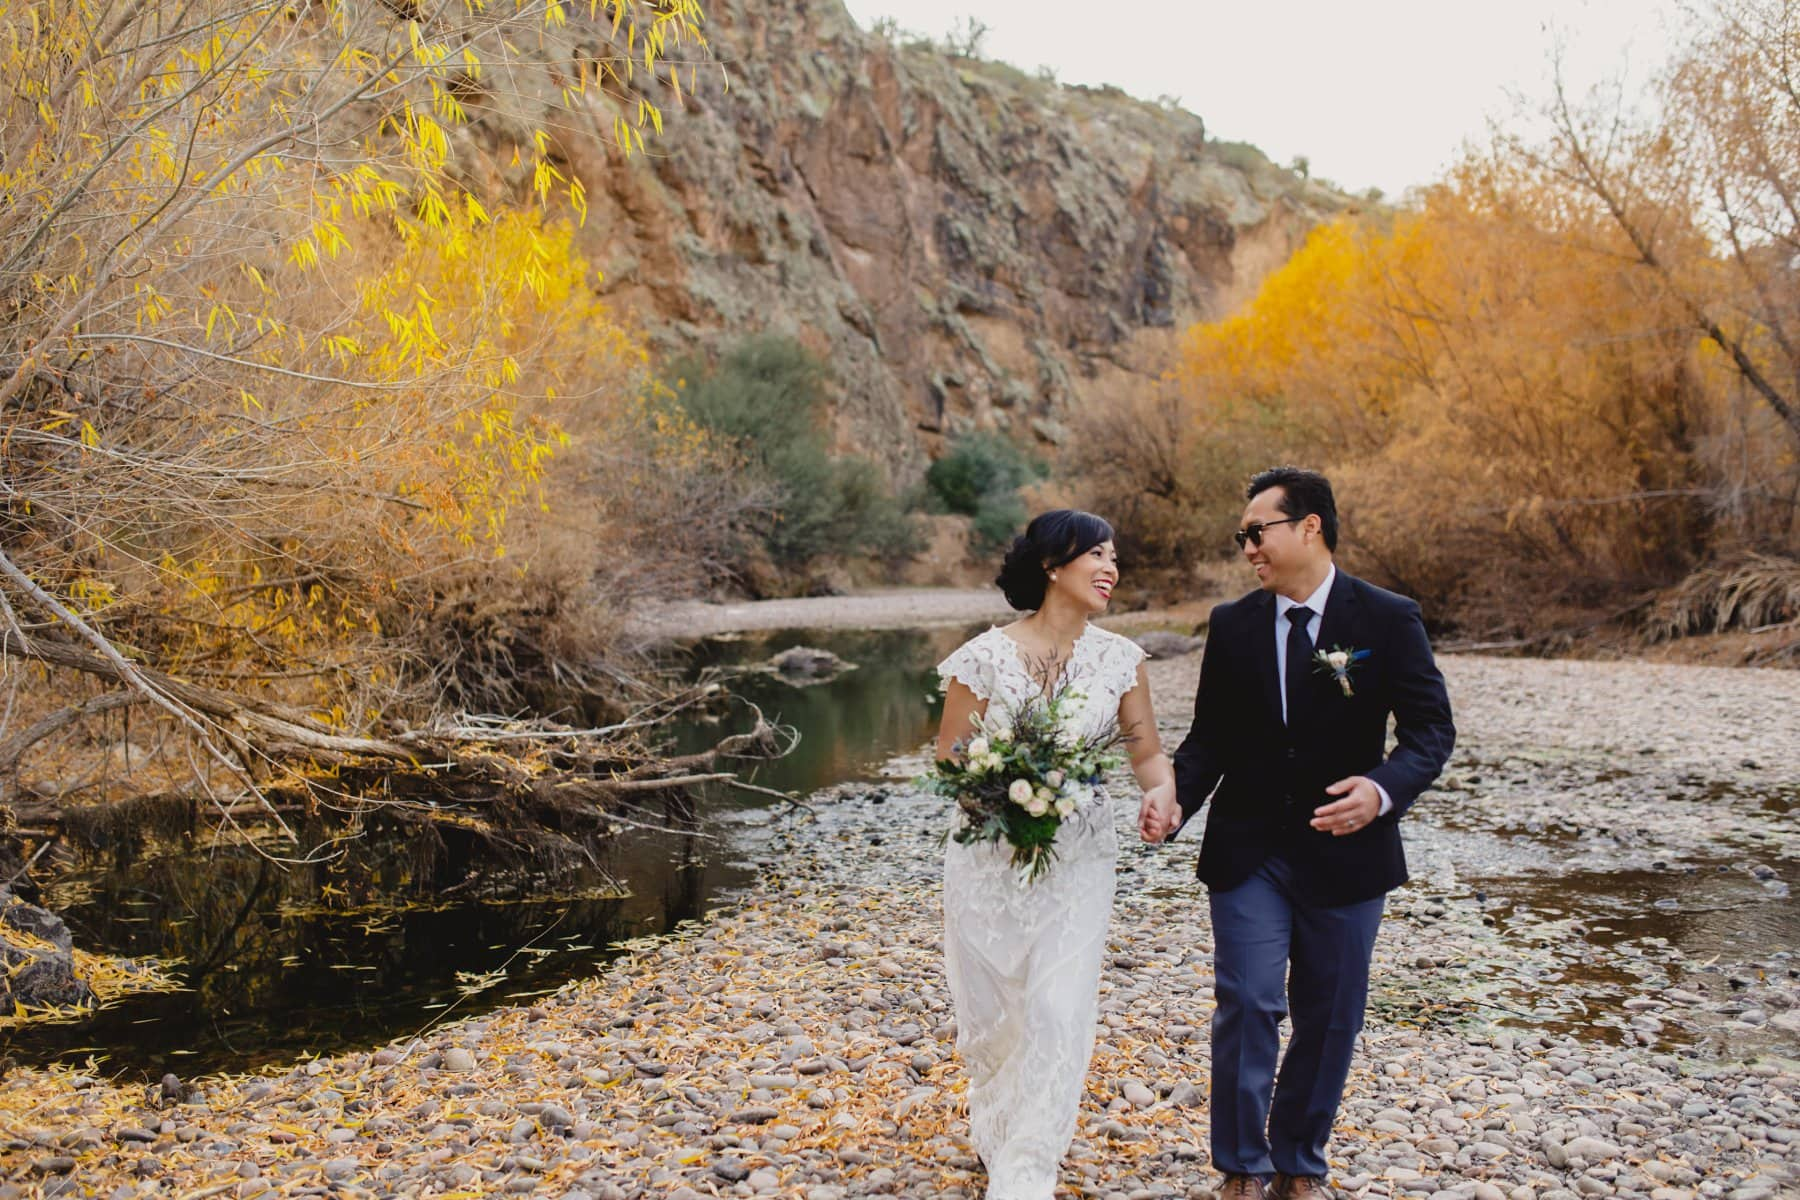 beautiful outdoor Arizona elopement location